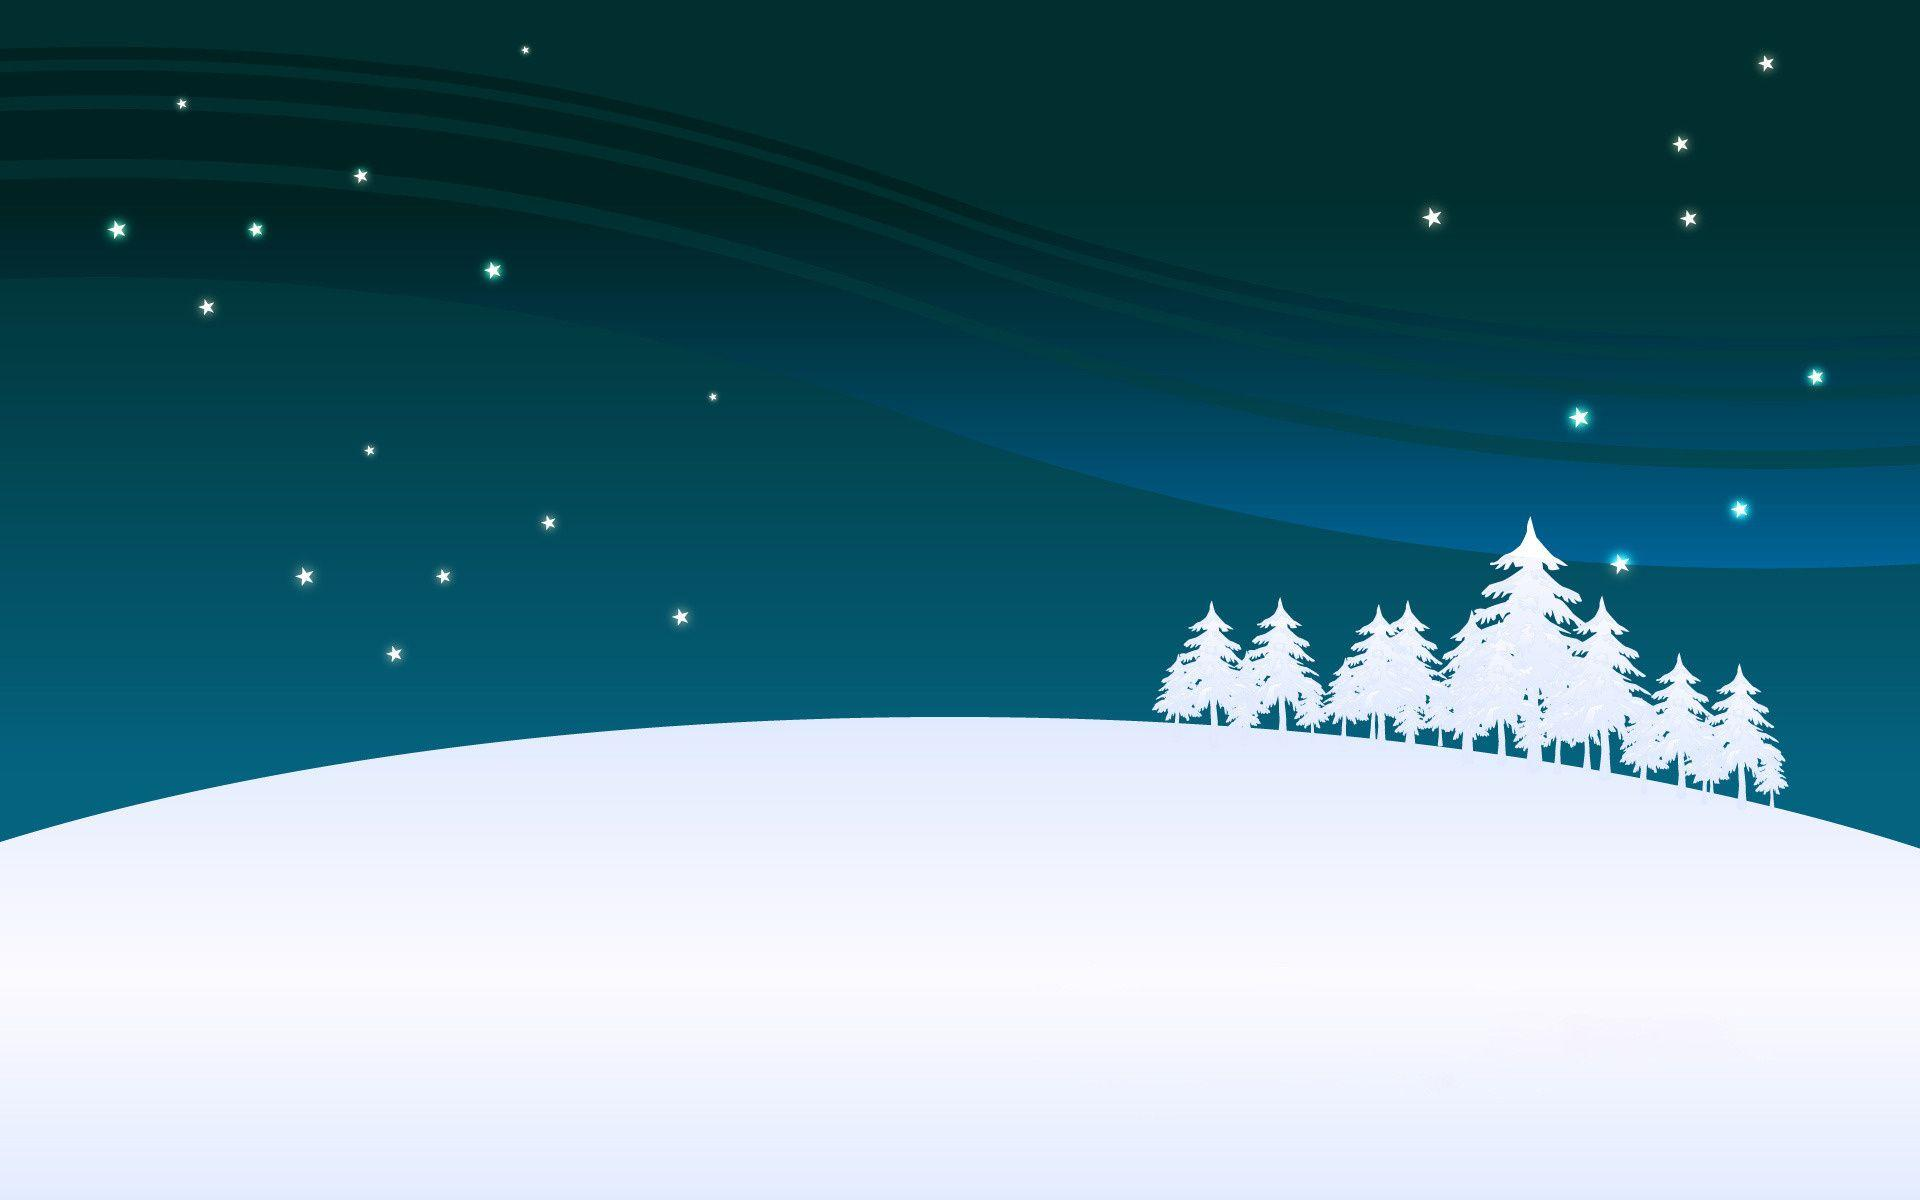 Winter-Holiday-Wallpapers-Gallery-(70-Plus)-PIC-WPW508433 ...